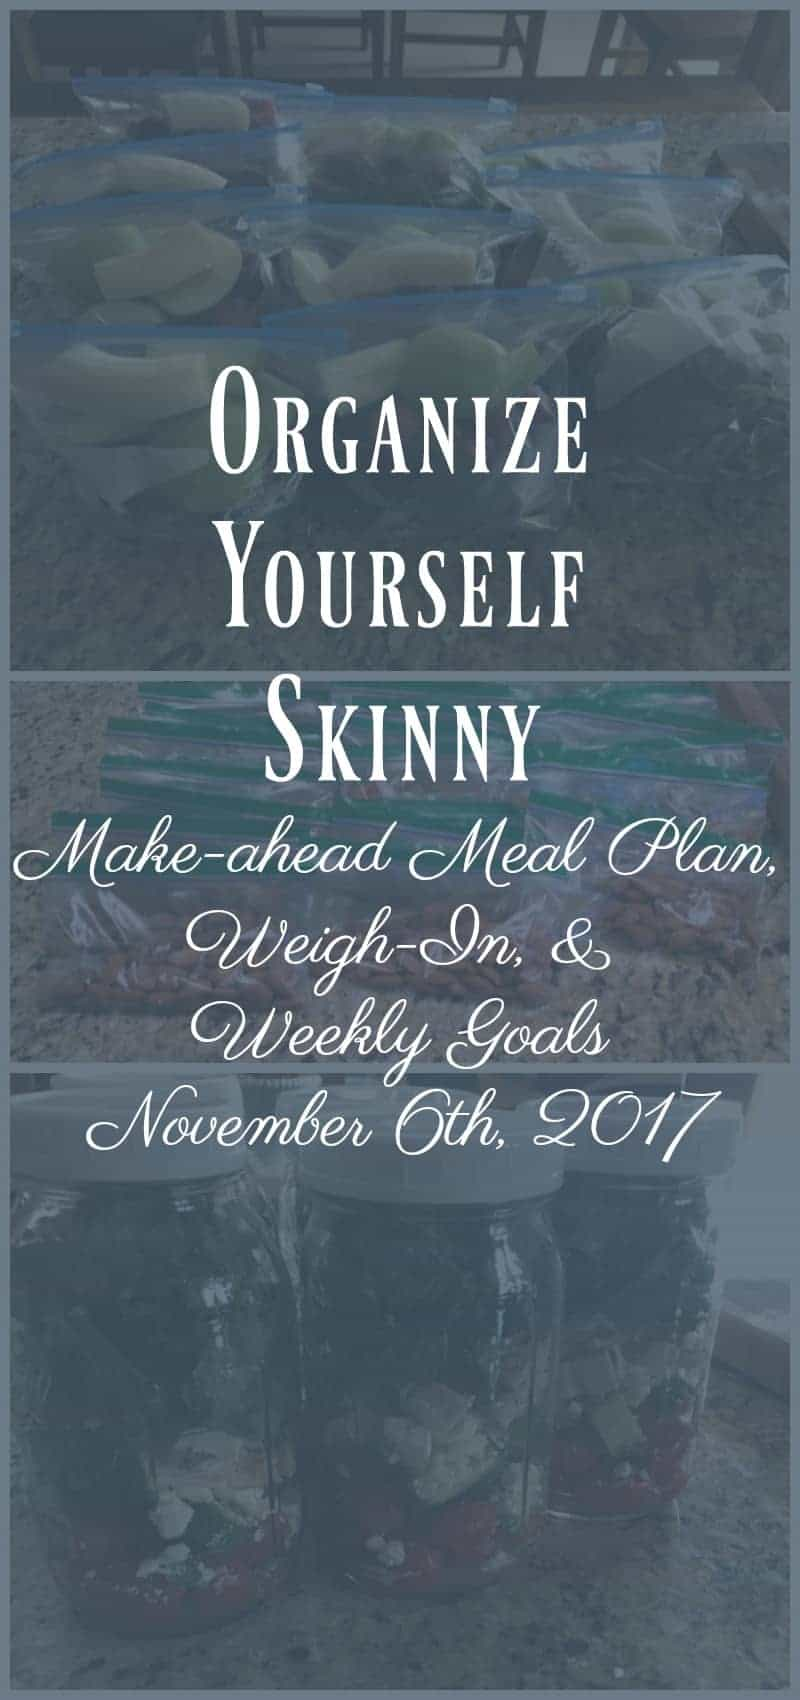 Make-ahead Meal Plan, Weigh-In, and Weekly Goals